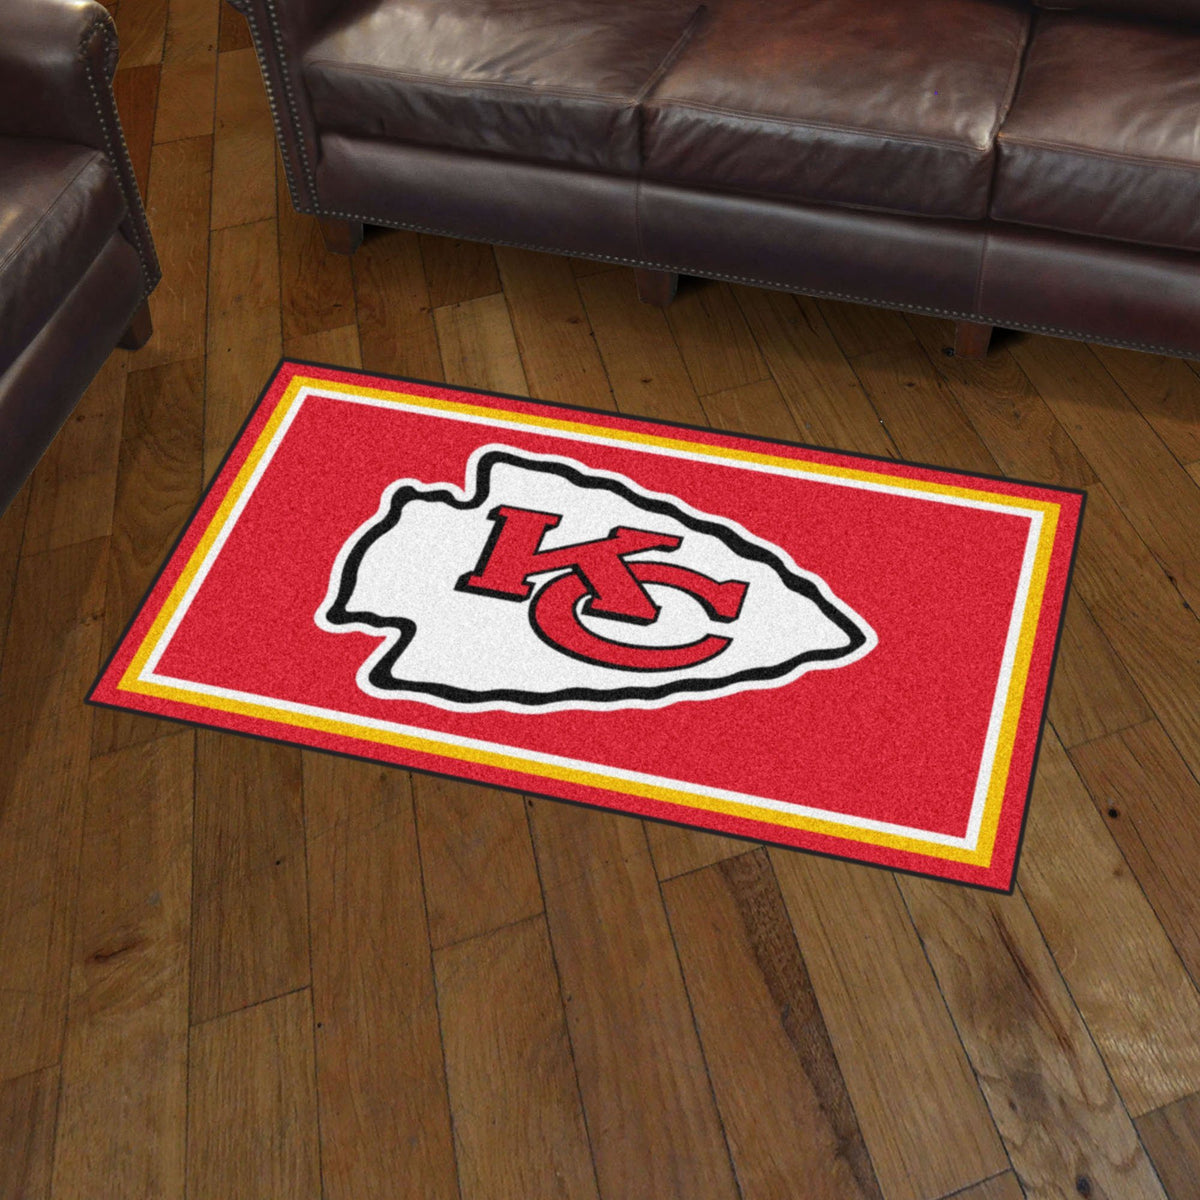 NFL - 3' x 5' Rug NFL Mats, Plush Rugs, 3x5 Rug, NFL, Home Fan Mats Kansas City Chiefs